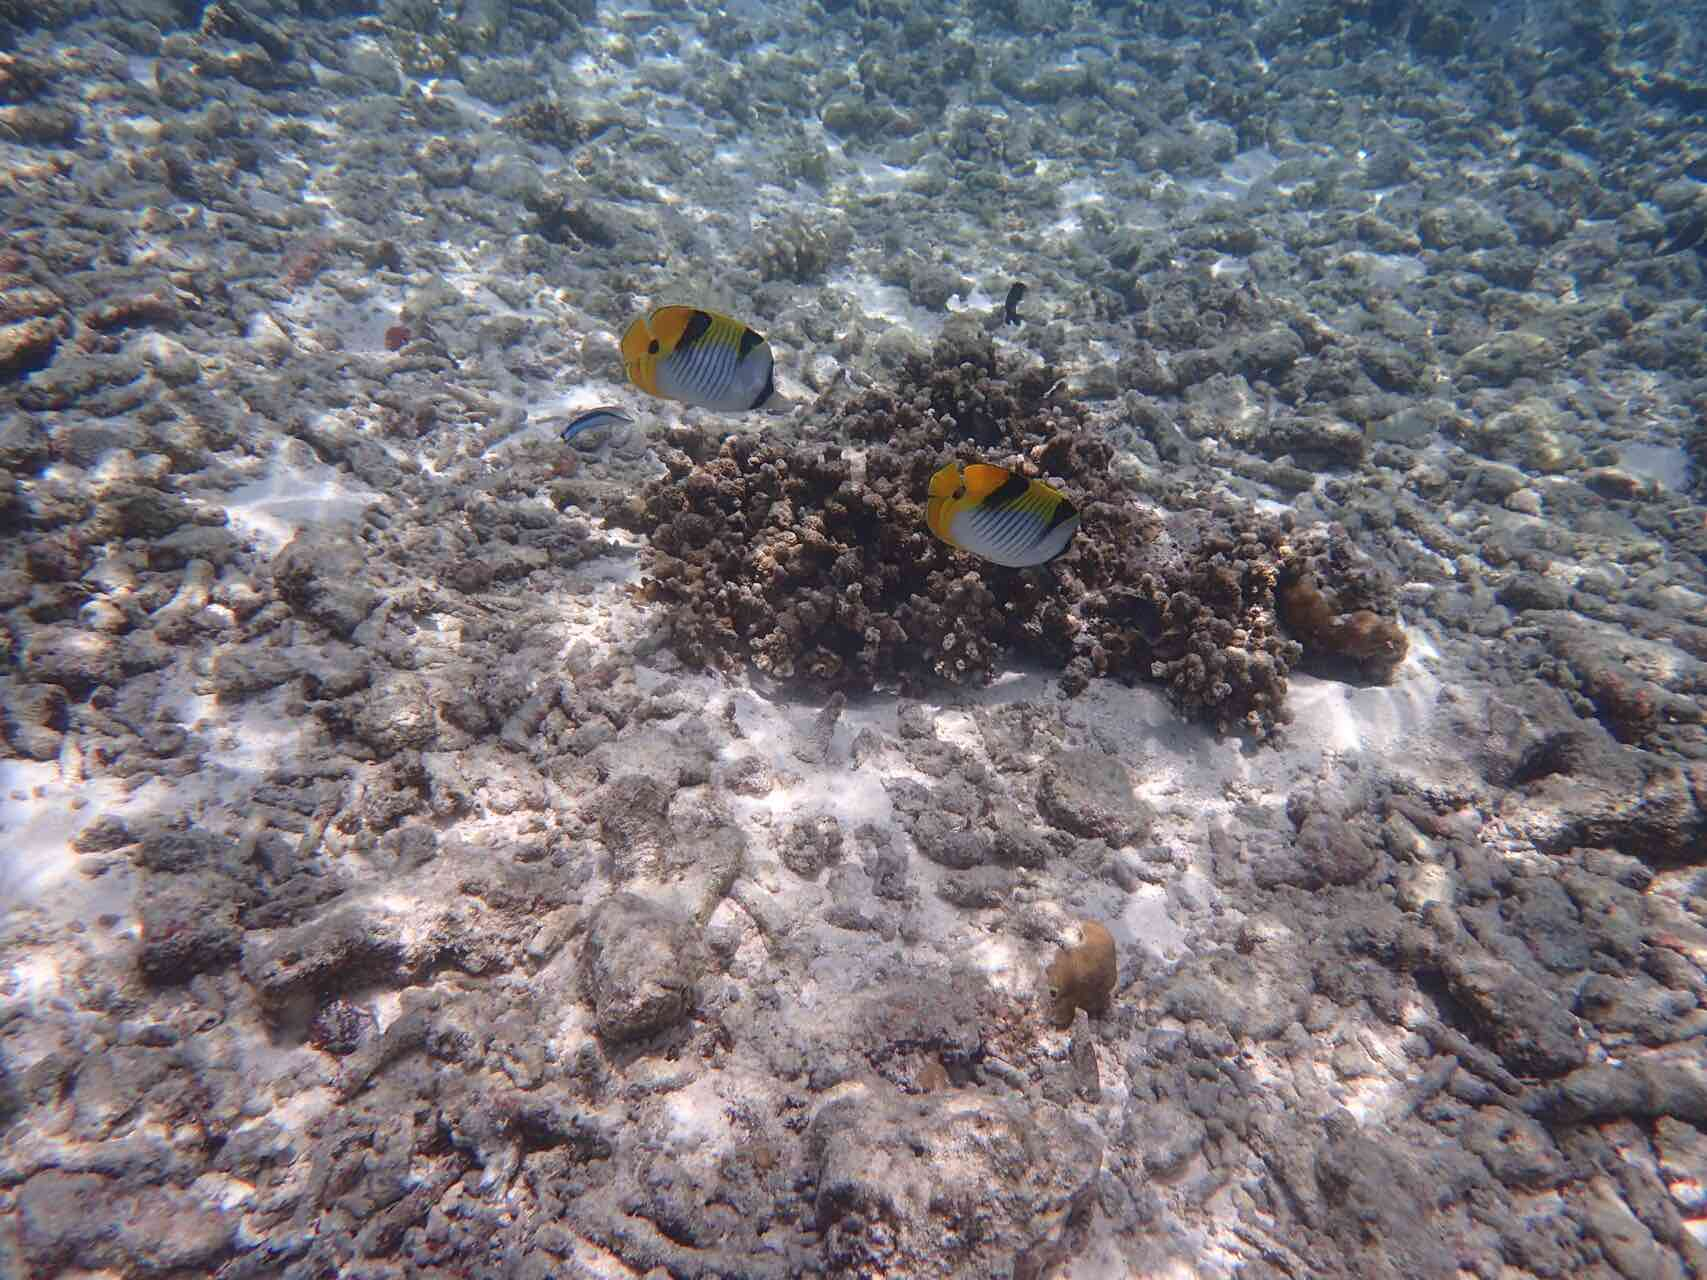 maldives-oblu-by-atmosphere-at-helengeli-reef-fish-snorkle-holiday-review-feedback-invite-to-paradise-quentin-kate-hulm.jpg